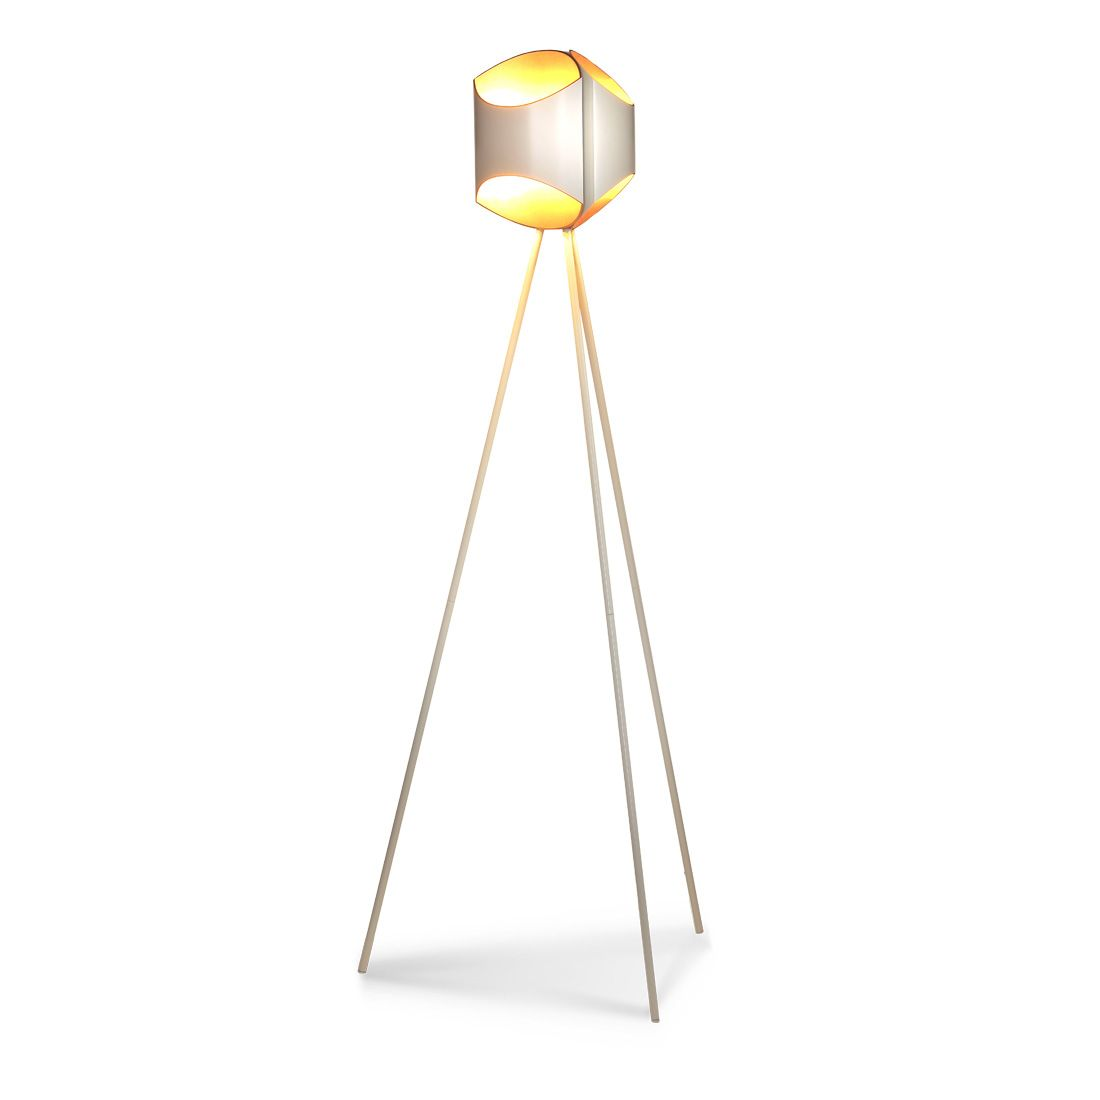 Halogenstehleuchte sojus floor lamp attic and lights